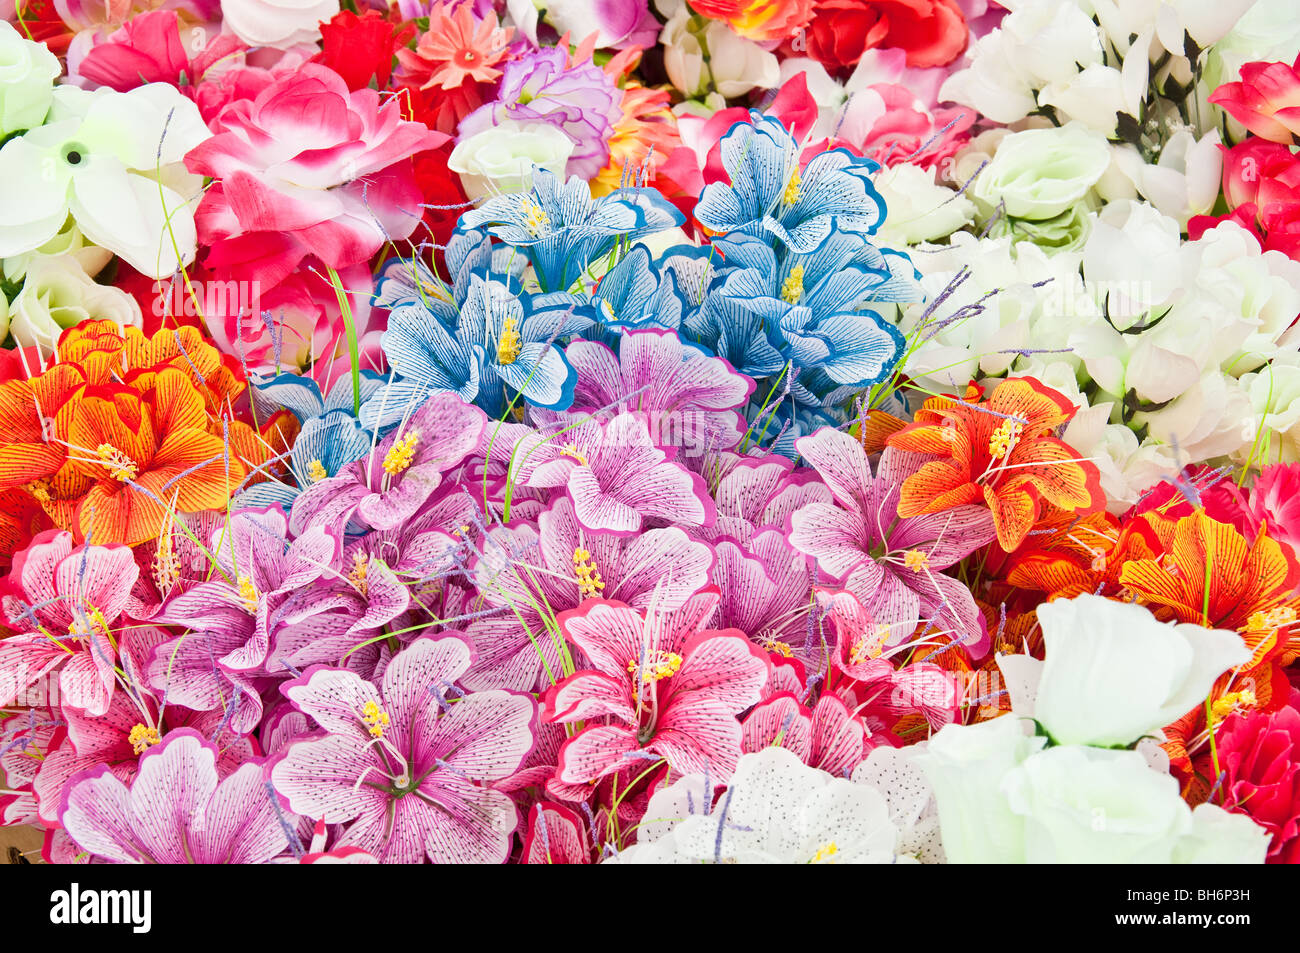 Cheap flowers stock photos cheap flowers stock images alamy various brightly colored artificial flowers for sale at flee market stock image izmirmasajfo